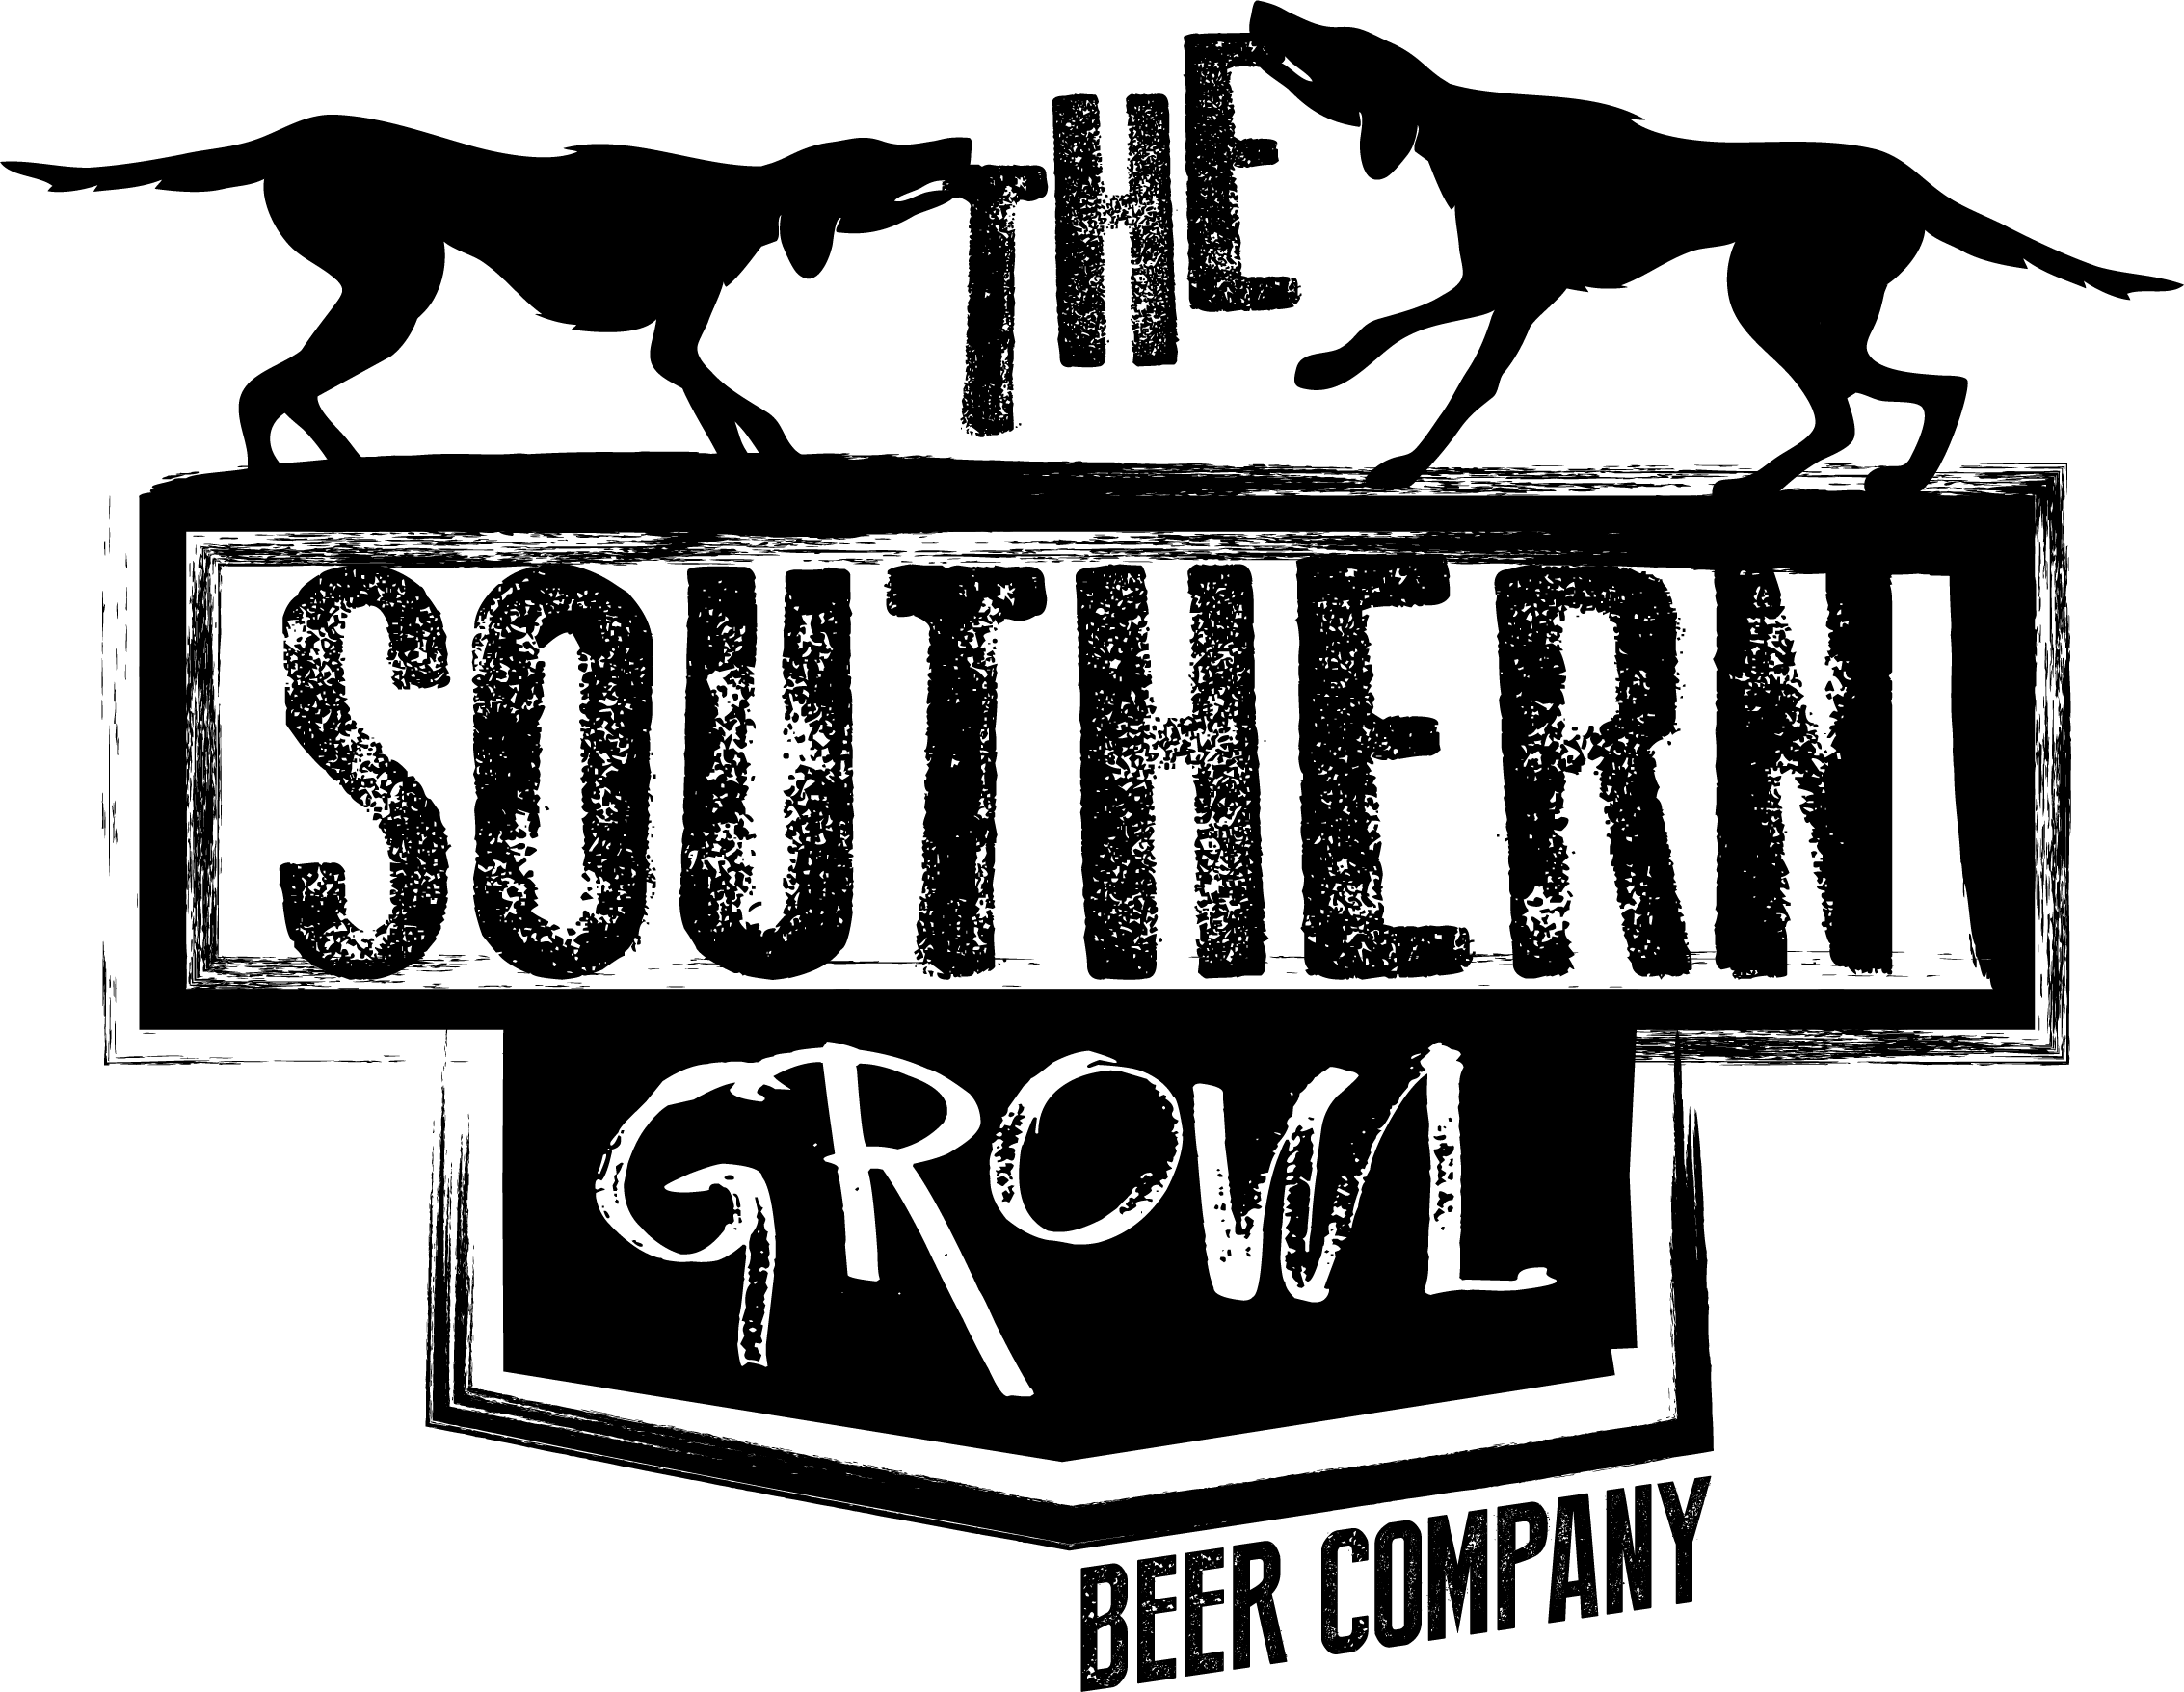 Brewery Expansion Updates - The Southern Growl will be expanding current operations this fall by adding a brewery. We will be moving from our current location to a stand alone building right up the road. The new brewery will be located at 155 N Buncombe Rd, Greer, SC. Until then, we are open at 6 S Buncombe Rd.